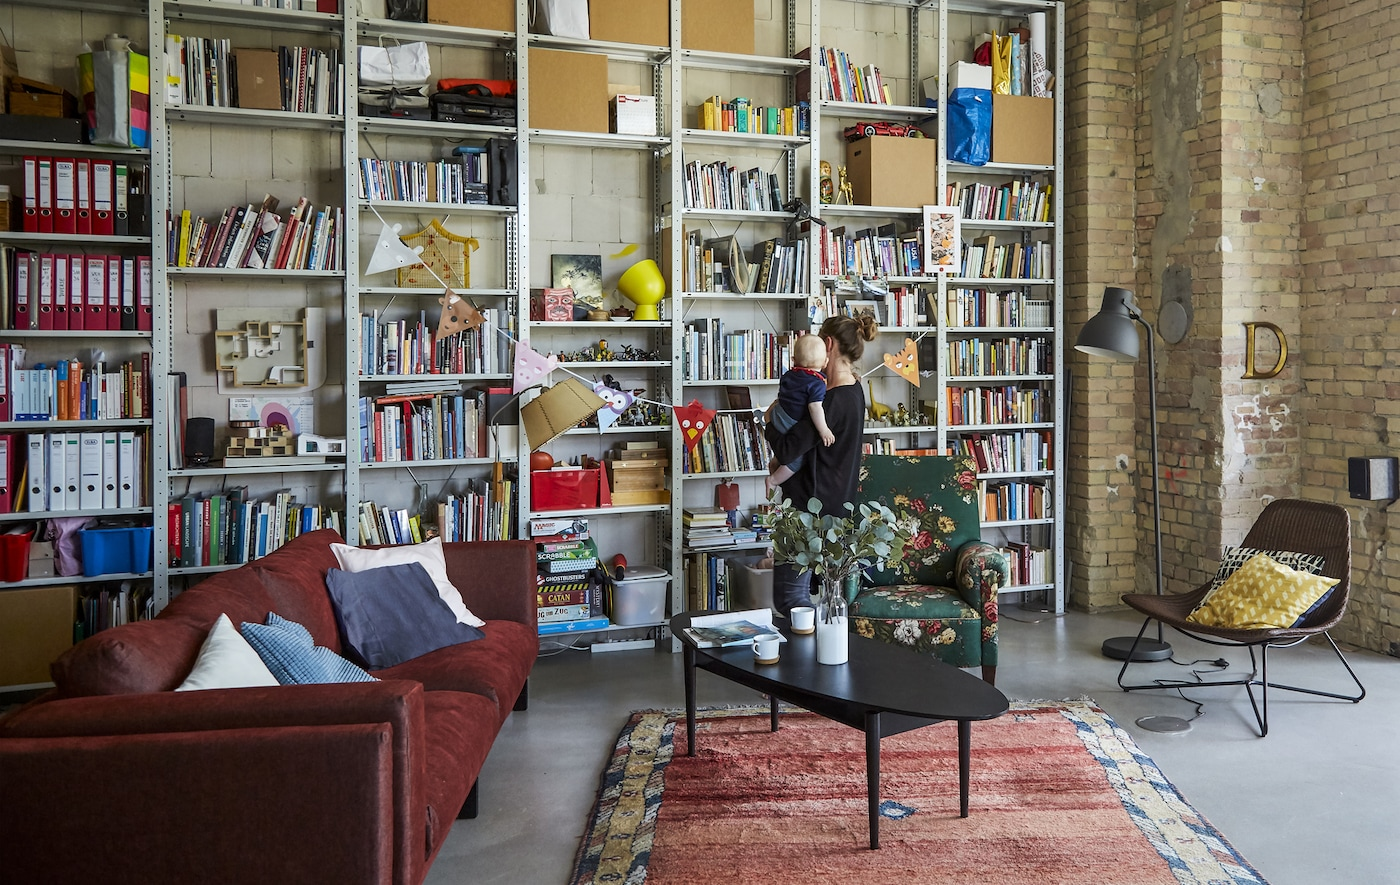 A living room with a red sofa and wall of shelves.